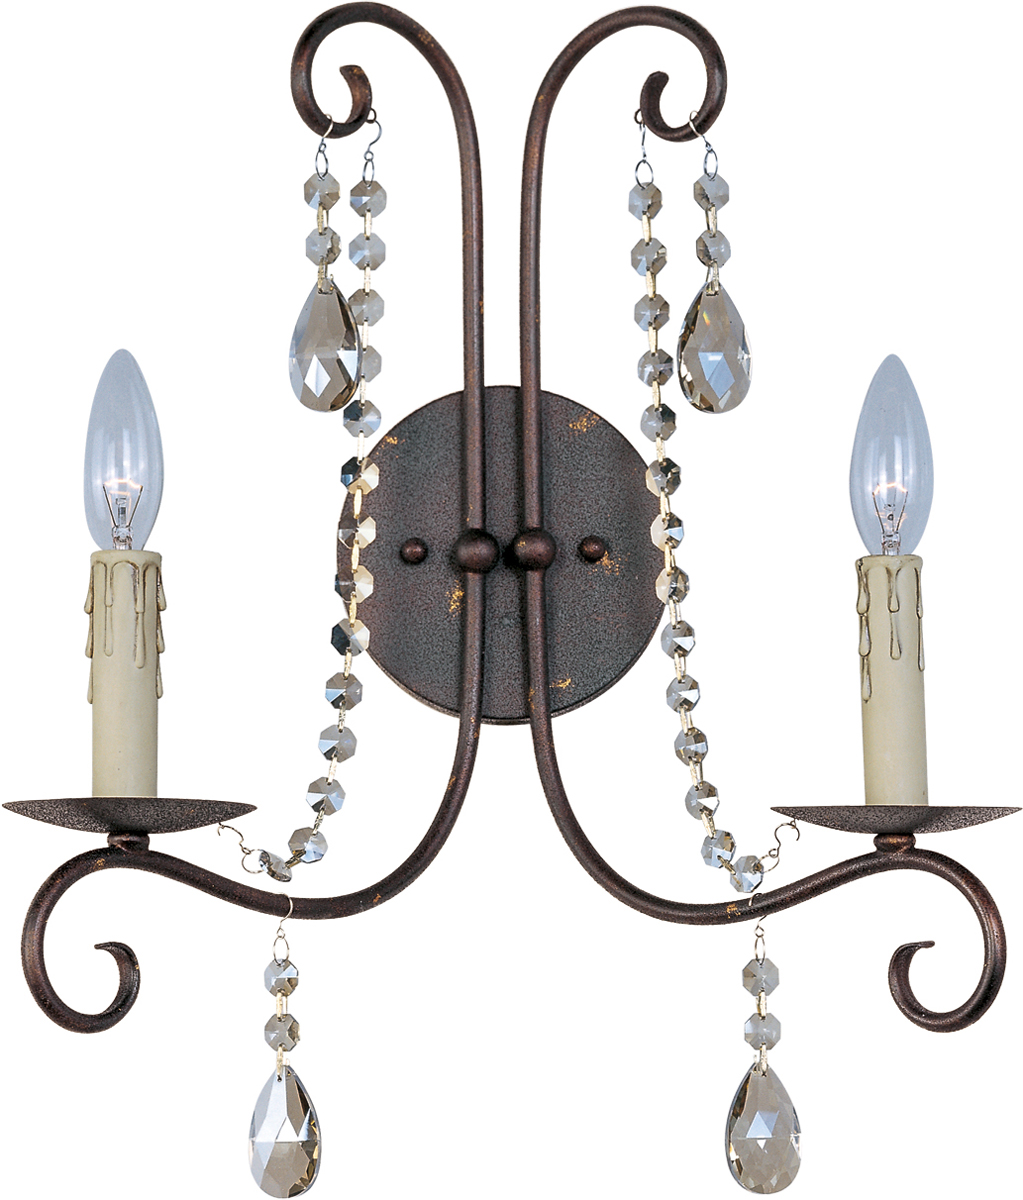 Wall Sconce Rough In Height : Maxim Lighting (22192) Adriana 2-Light Wall Sconce shown in Urban Rustic